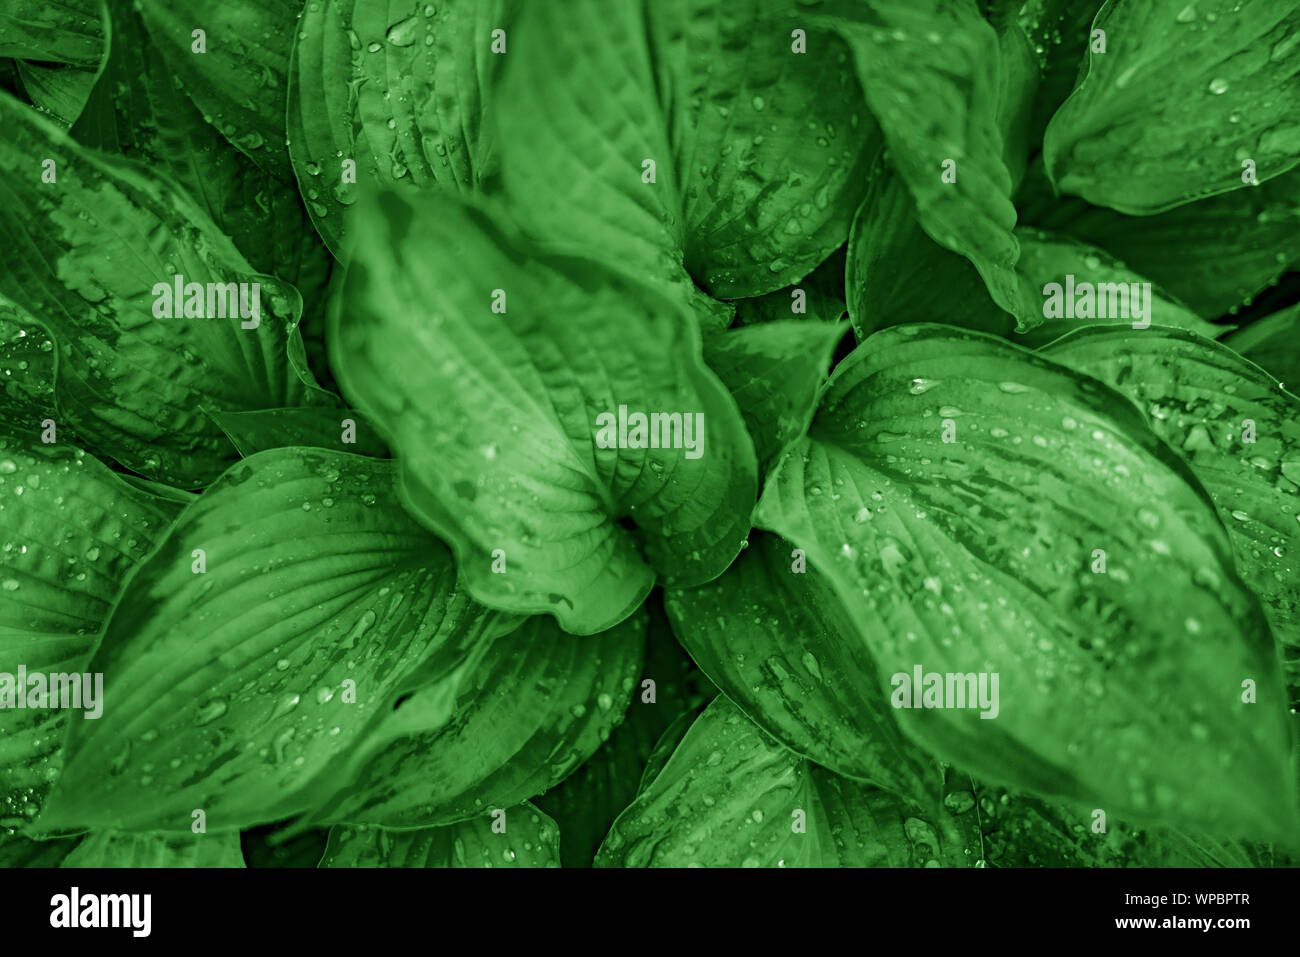 Green plants with dew drops. Stock Photo